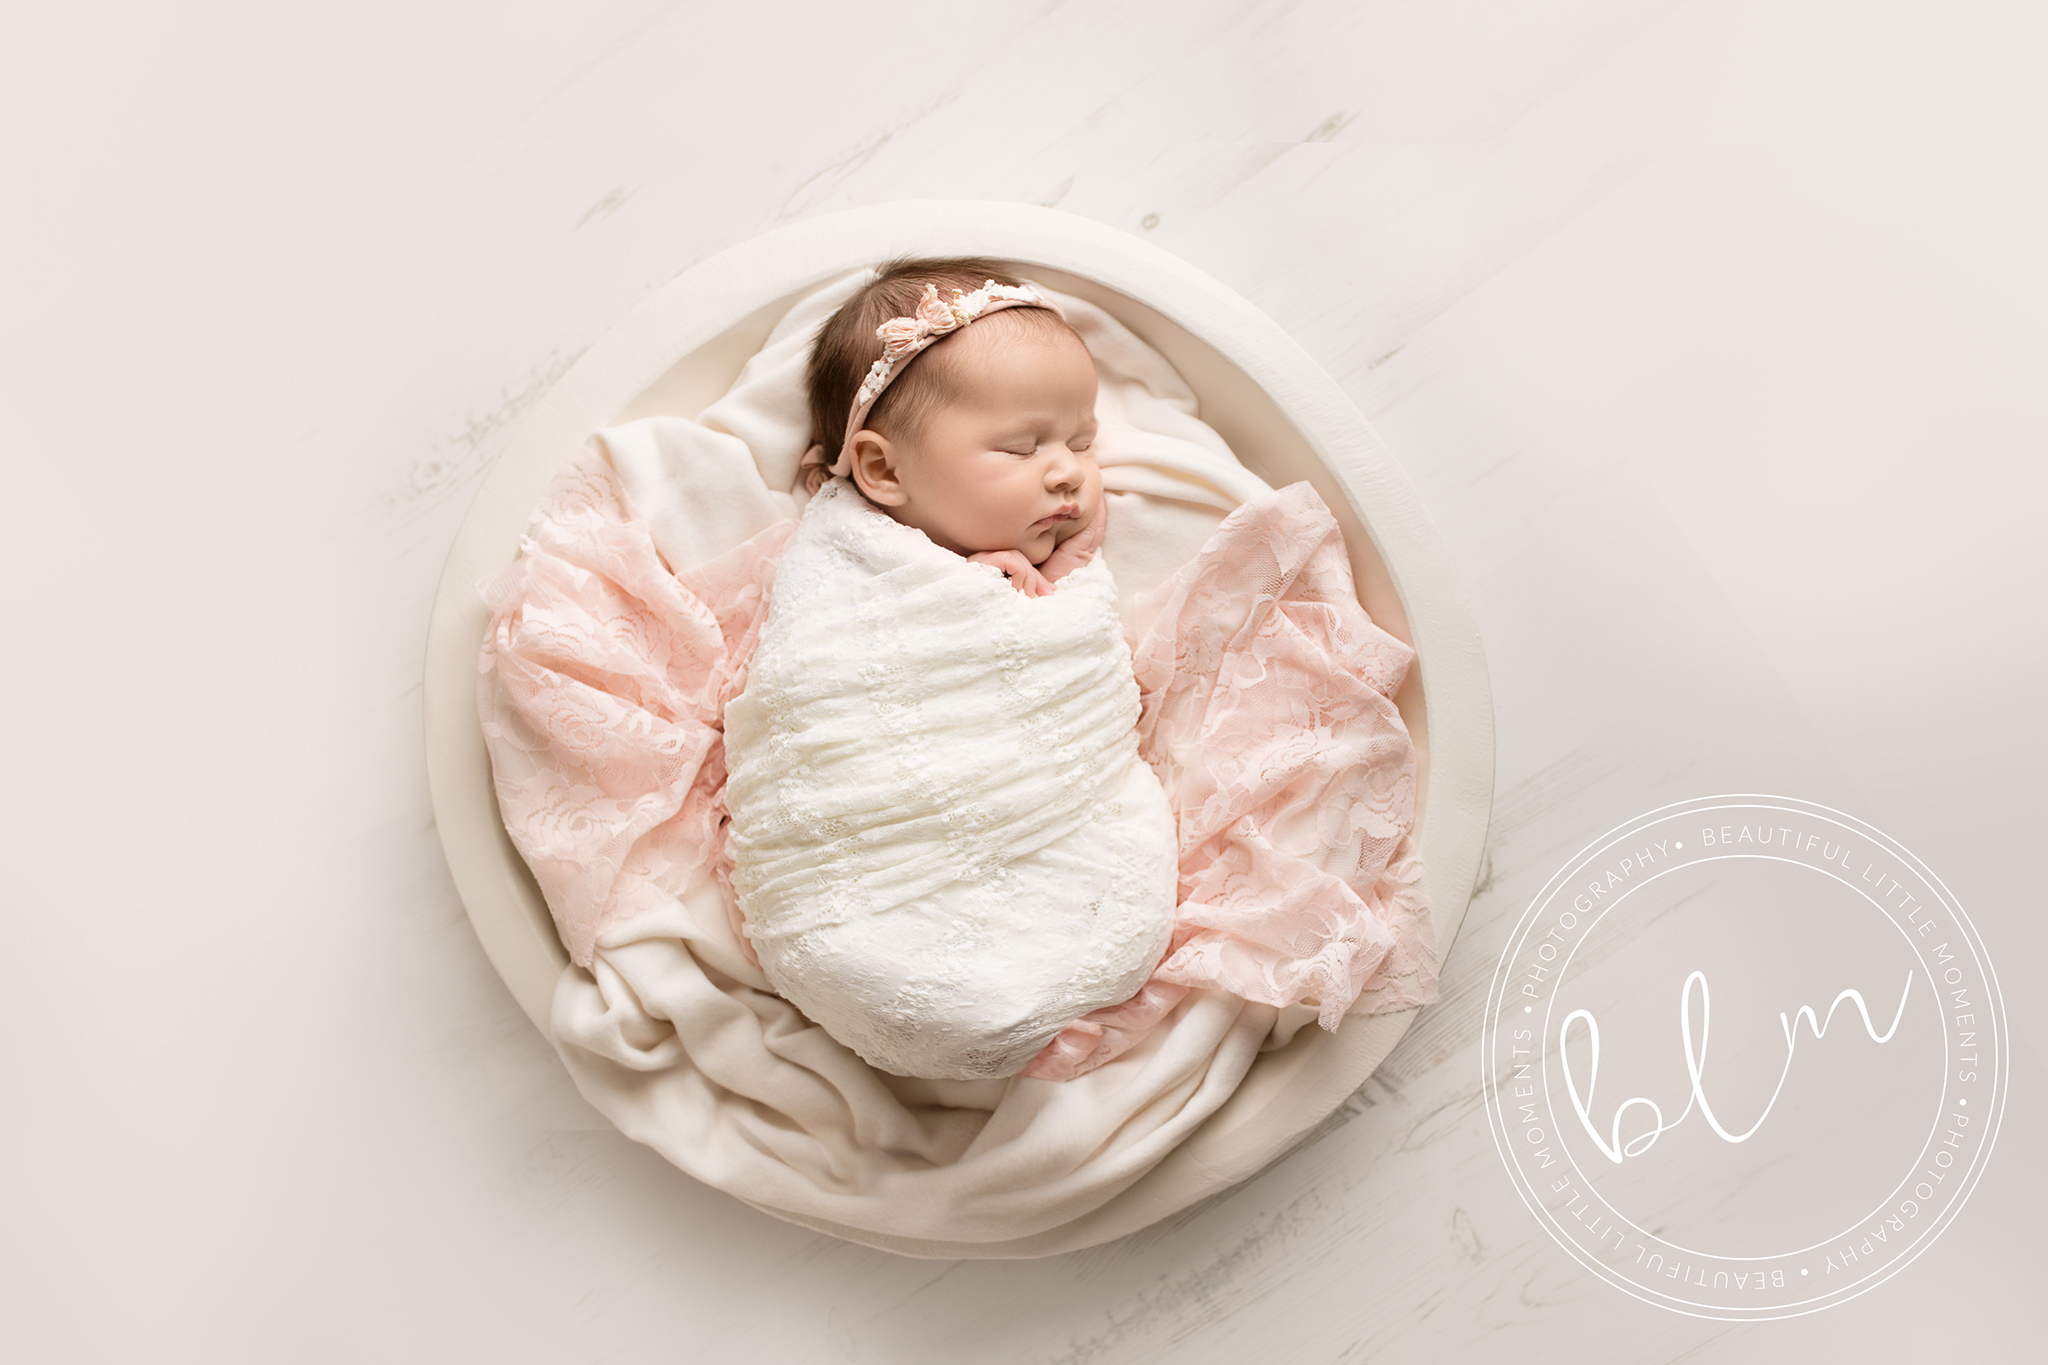 newborn baby girl wrapped in lace